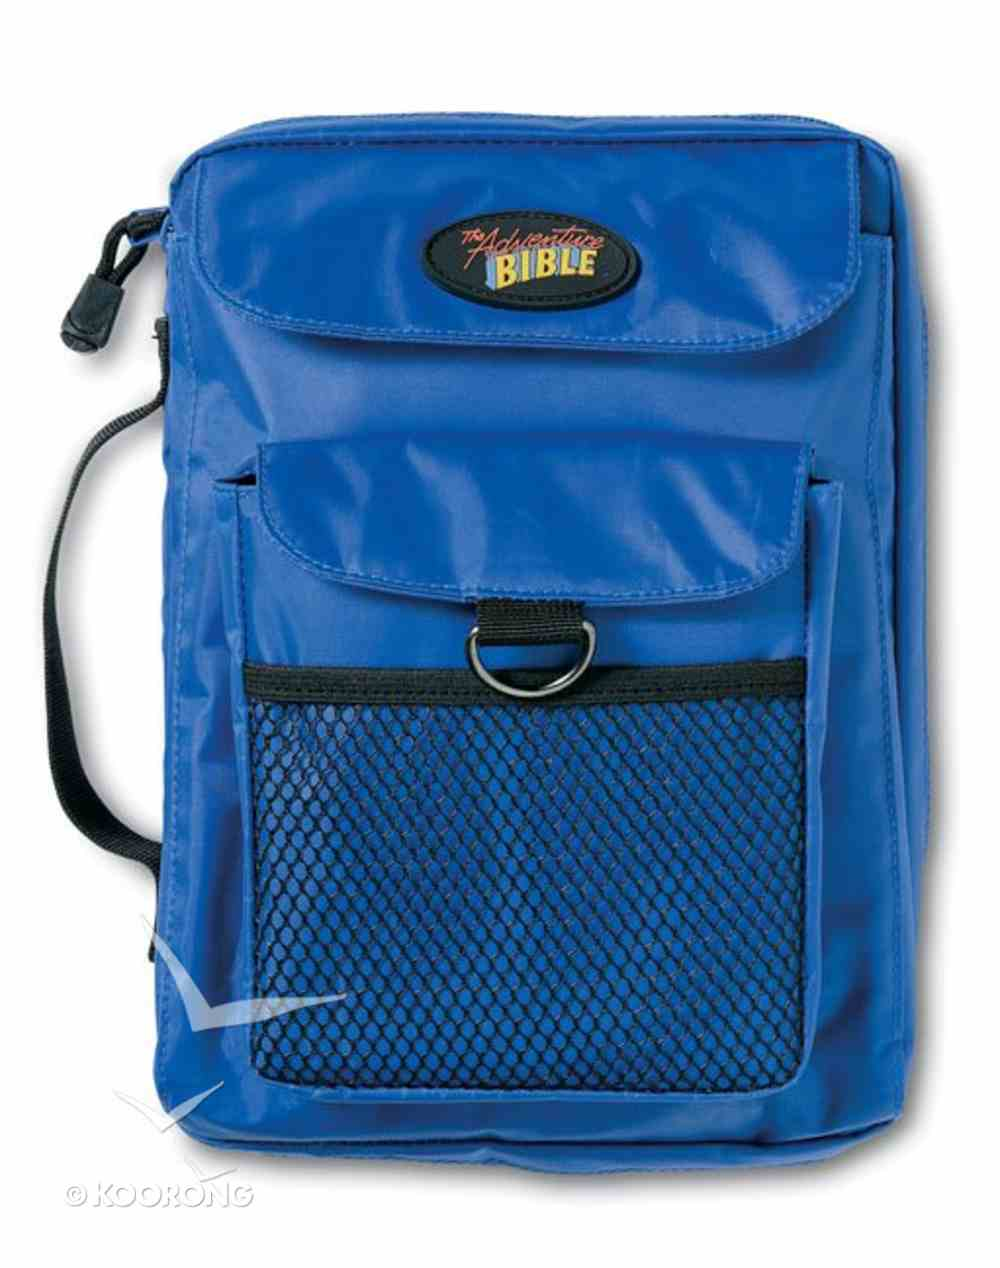 Bible Cover Adventure Bible Blue Nylon With Mesh Pocket Bible Cover